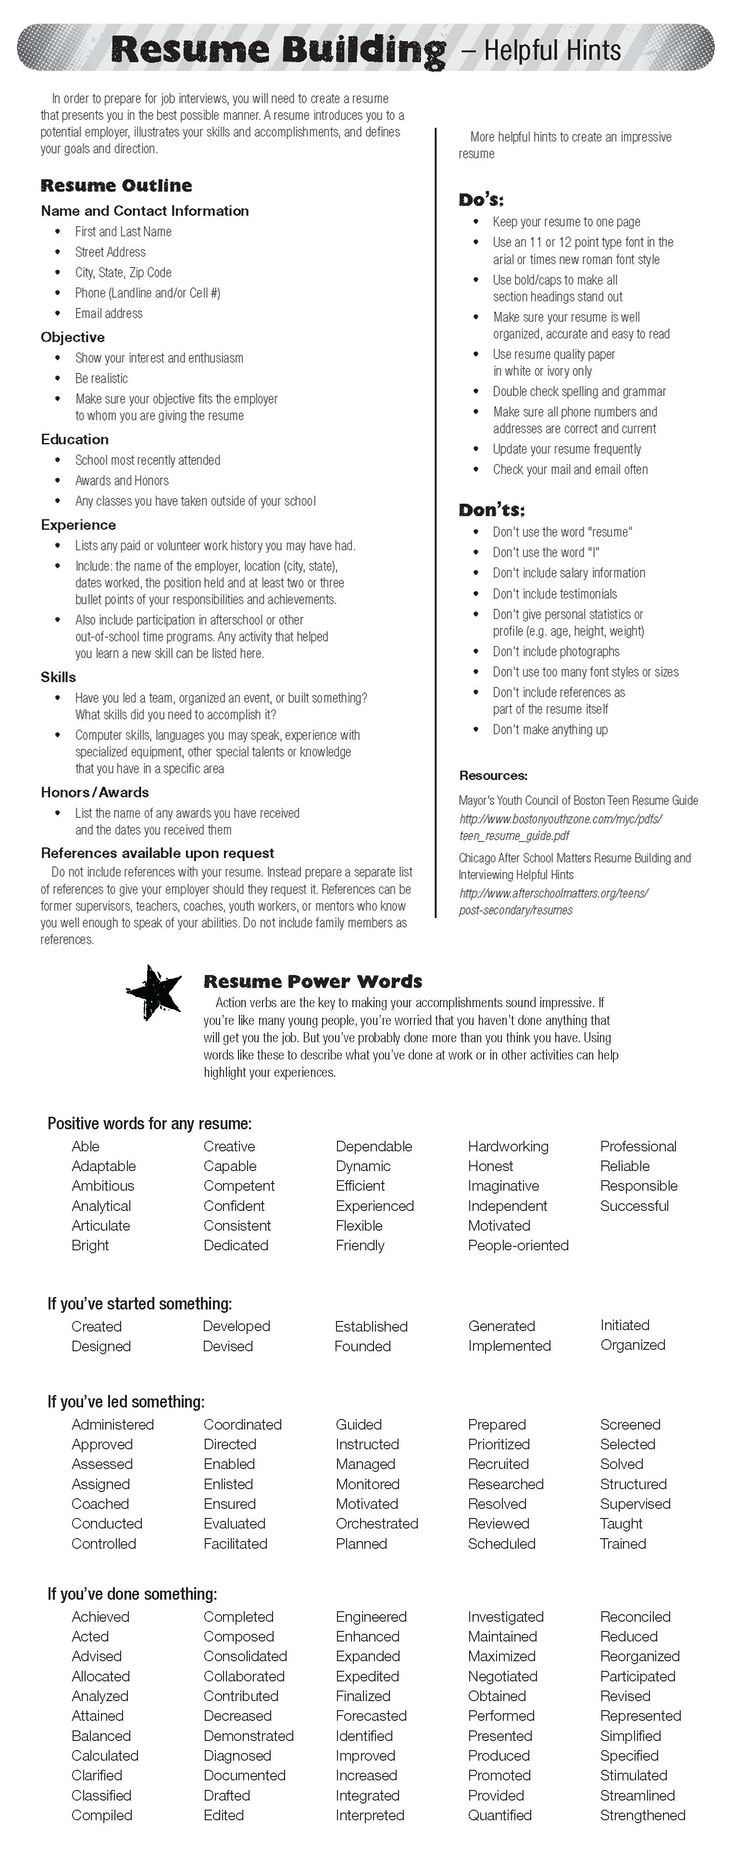 Opposenewapstandardsus  Fascinating  Ideas About Resume On Pinterest  Cv Format Resume  With Handsome Check Out Todays Resume Building Tips Resume Resumepowerwords With Amusing How To Write Resumes Also Resume Manager In Addition Cheap Resumes And Ui Designer Resume As Well As How To Make A Resume Without Experience Additionally Write A Resume Online From Pinterestcom With Opposenewapstandardsus  Handsome  Ideas About Resume On Pinterest  Cv Format Resume  With Amusing Check Out Todays Resume Building Tips Resume Resumepowerwords And Fascinating How To Write Resumes Also Resume Manager In Addition Cheap Resumes From Pinterestcom